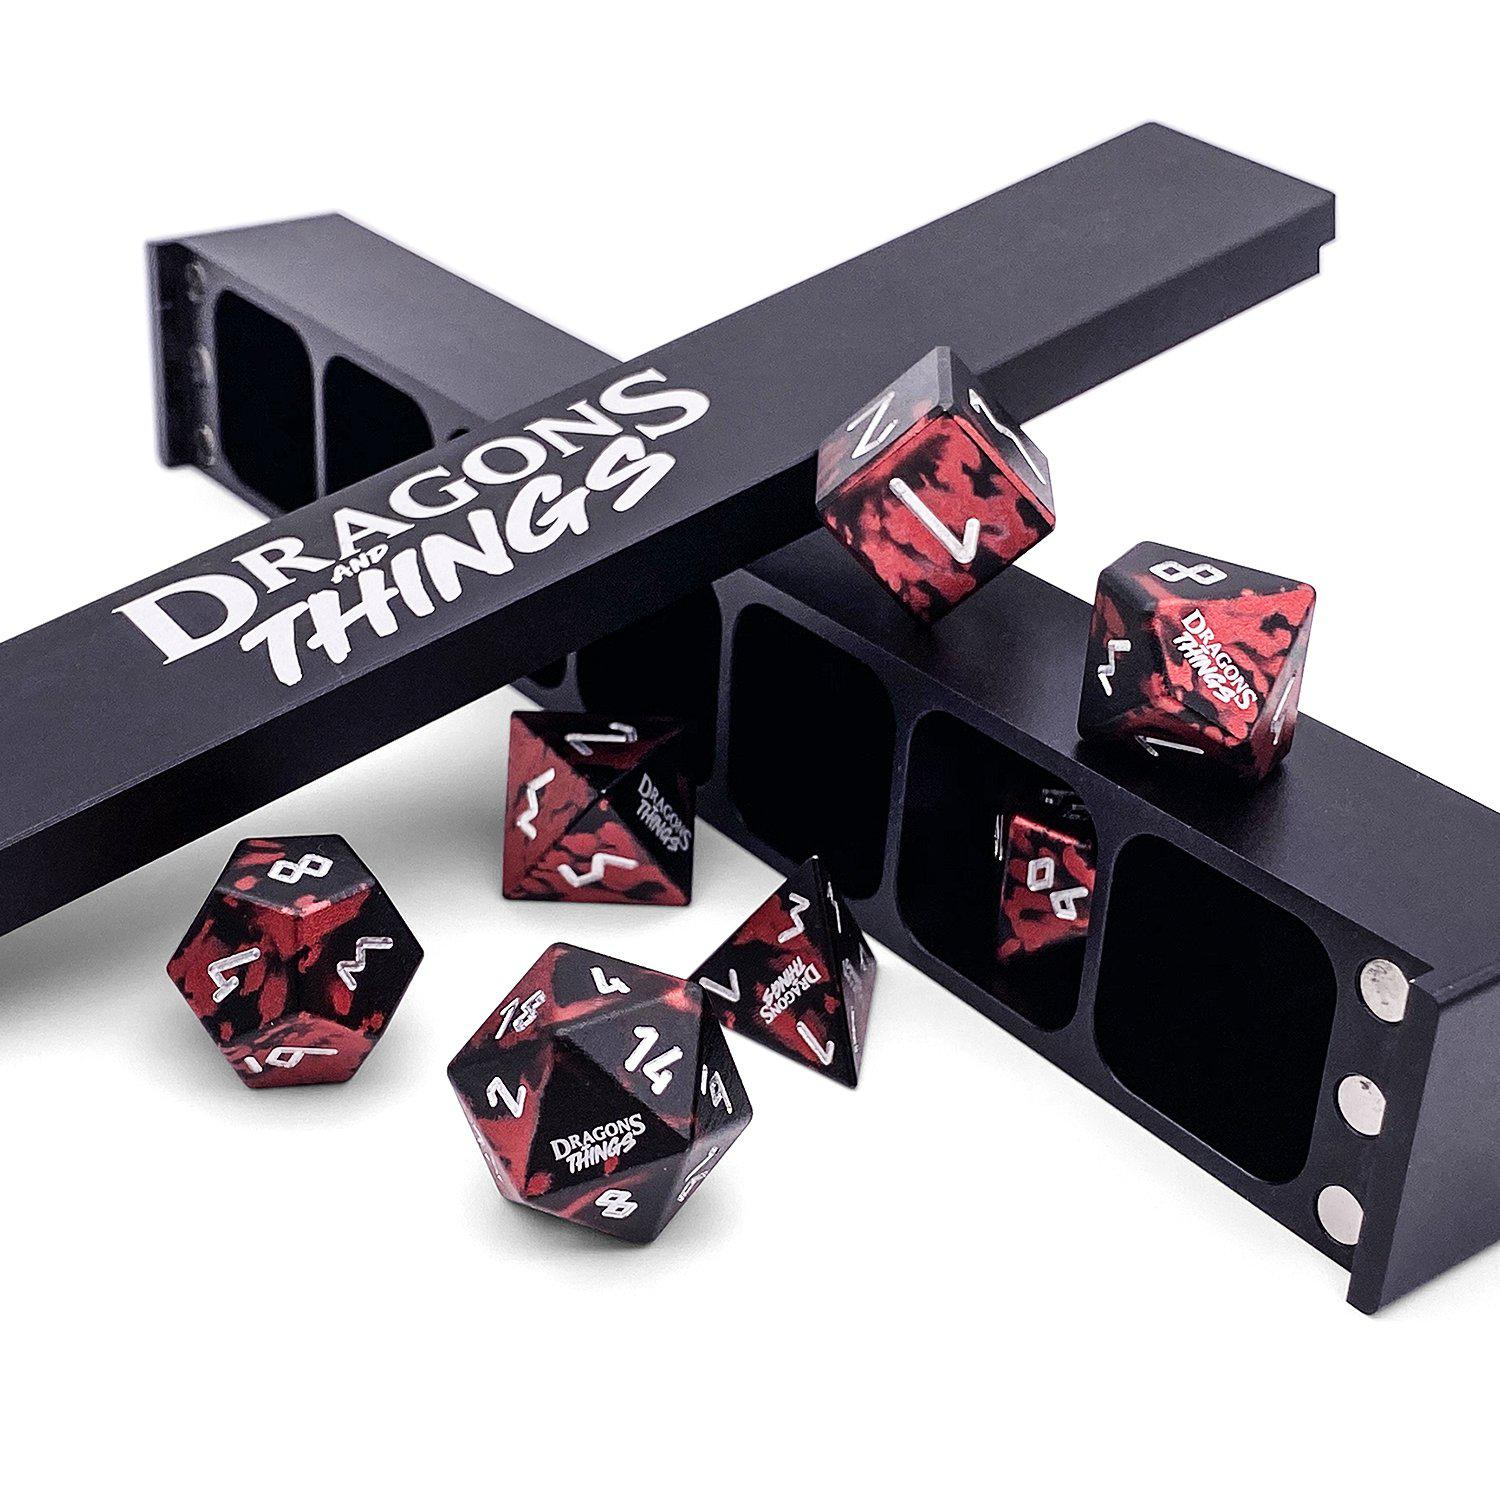 Dragons and Things Demons Blood - Precision CNC Aluminum Dice Set with Dice Vault